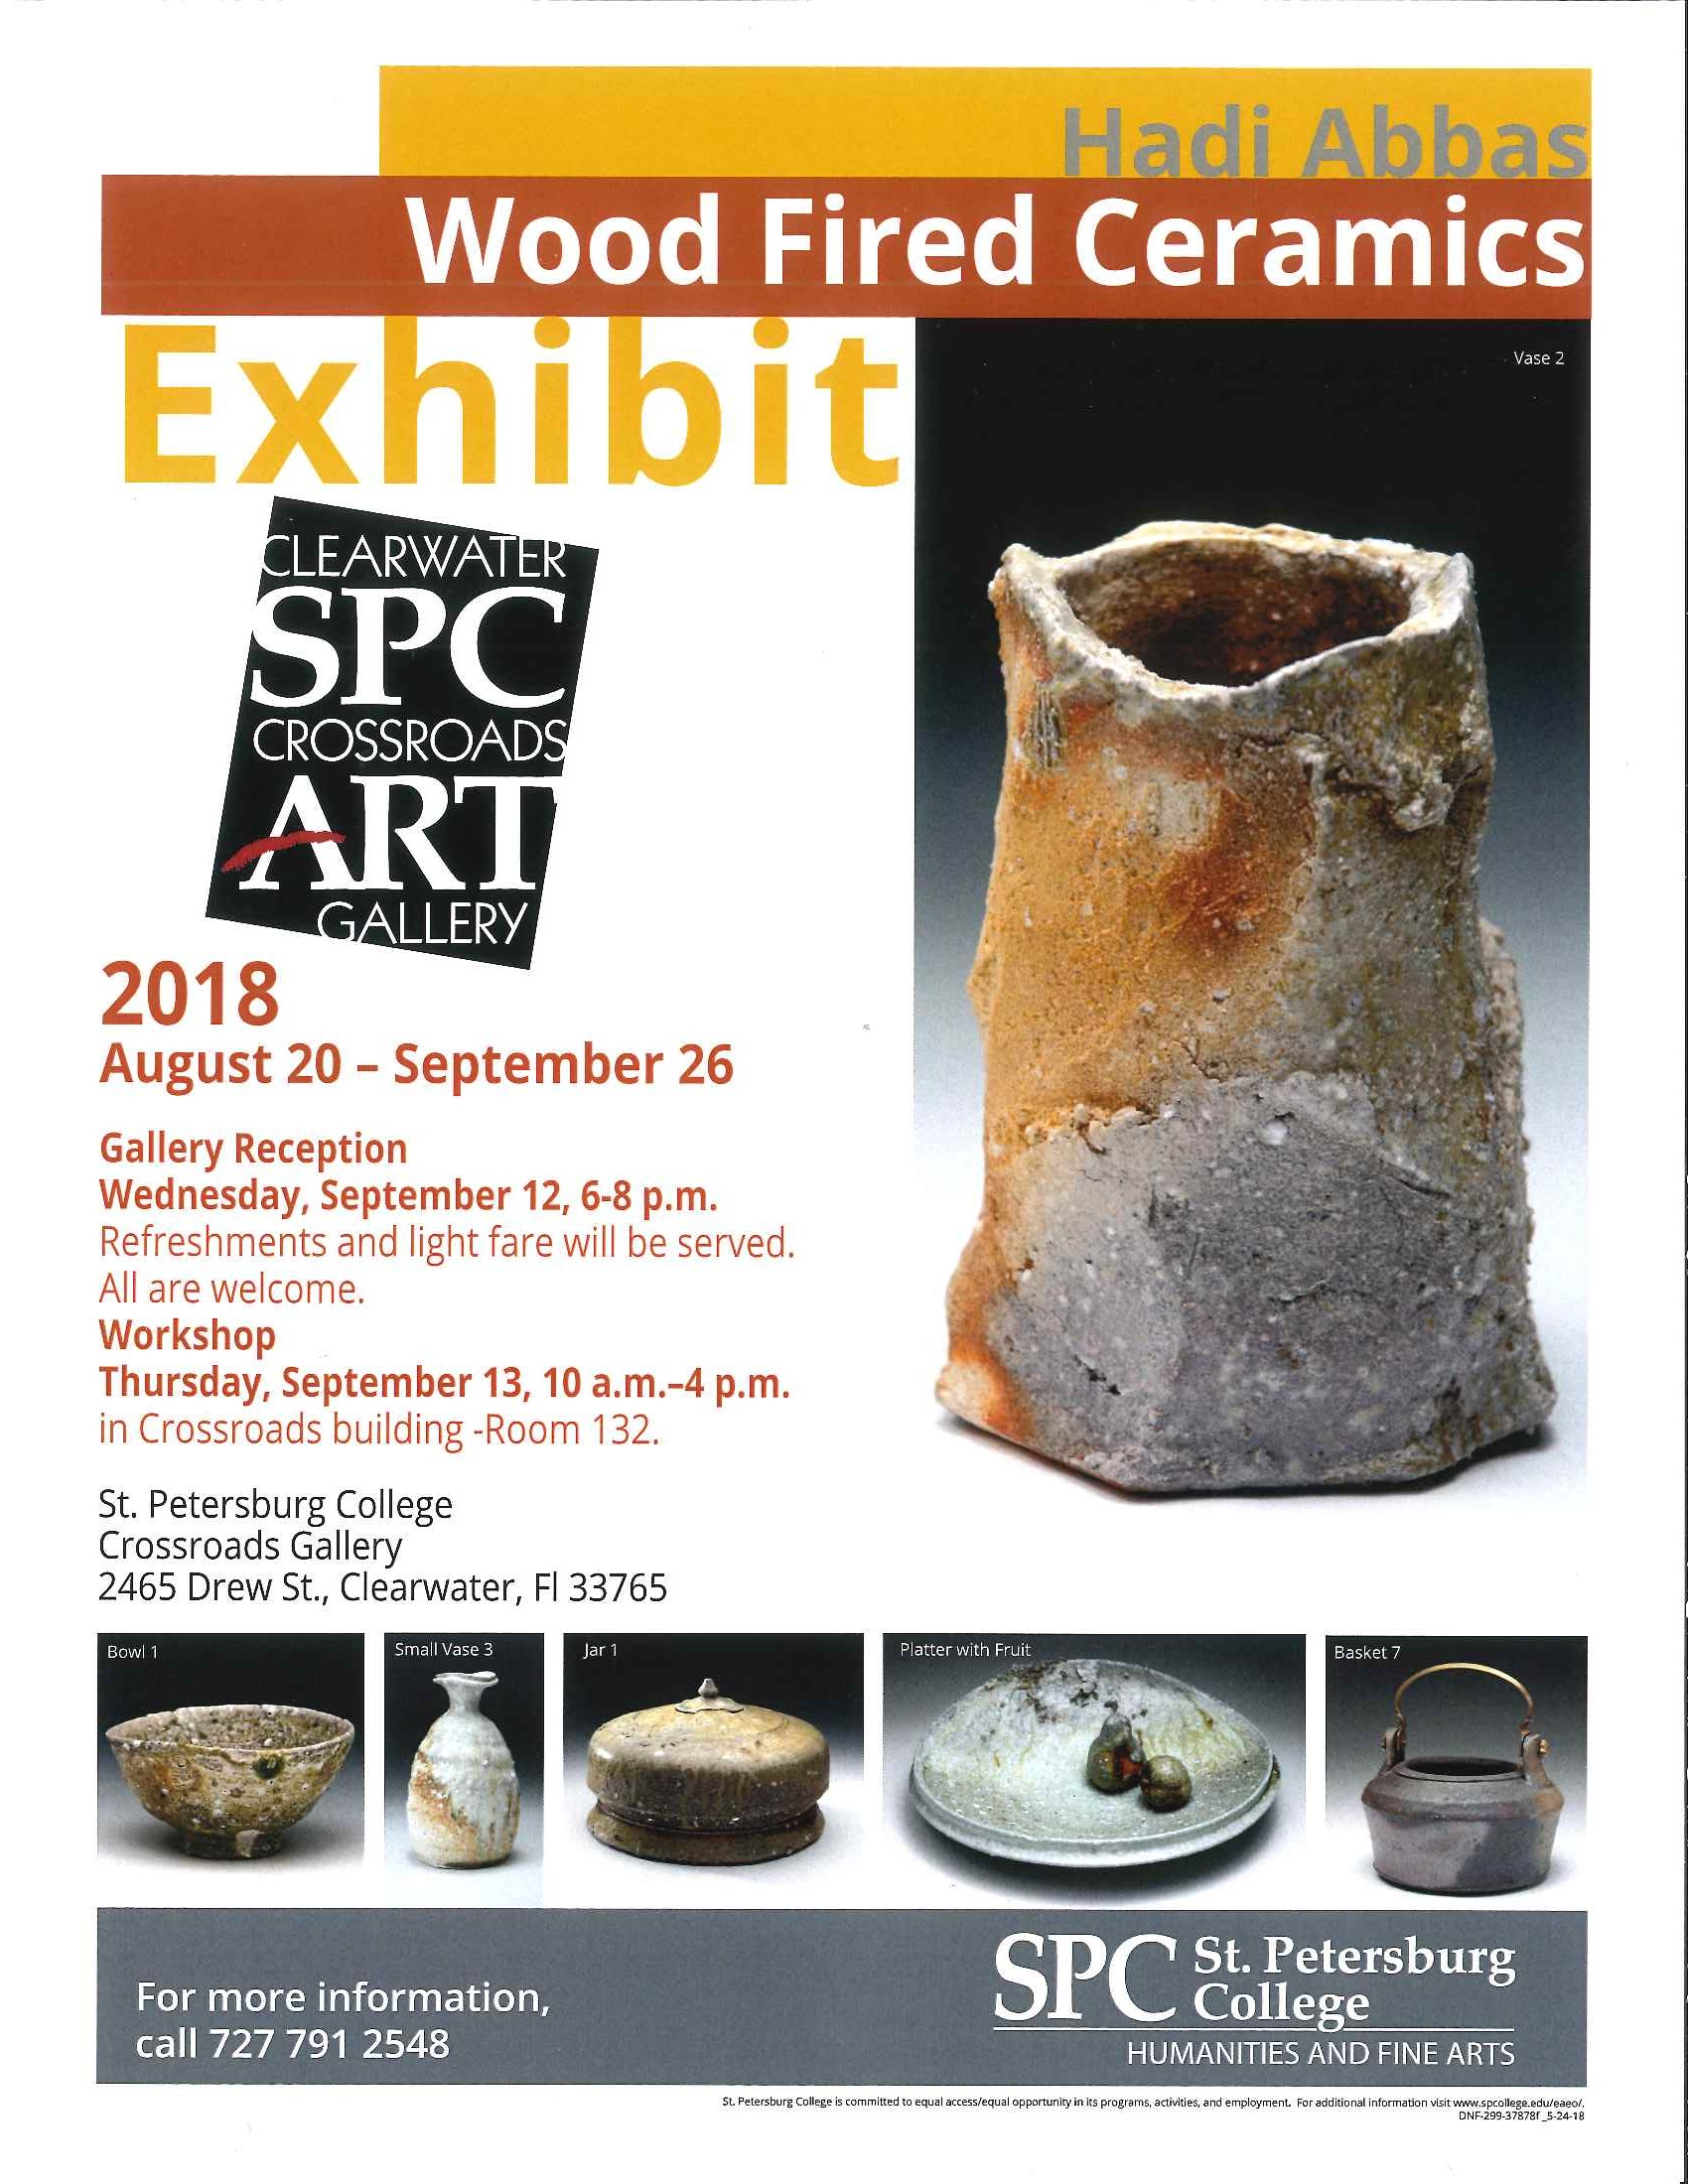 flyer showing six wood fired ceramics by Hadi Abbas. One is a tall cylinder vase rough cut texture with rust like flakes. A small speckel bowel with three finger like legs has a pebble cobblestone texture and color. A wavy flower bud vase has a water like shoreline texture and color. a Squished ceramic pot that looks and feels like a pumpkin is pictured. A thick heavy ridged plate with two ceramic peaches. And a slick earthy teapot like basket ceramic pot is the last image